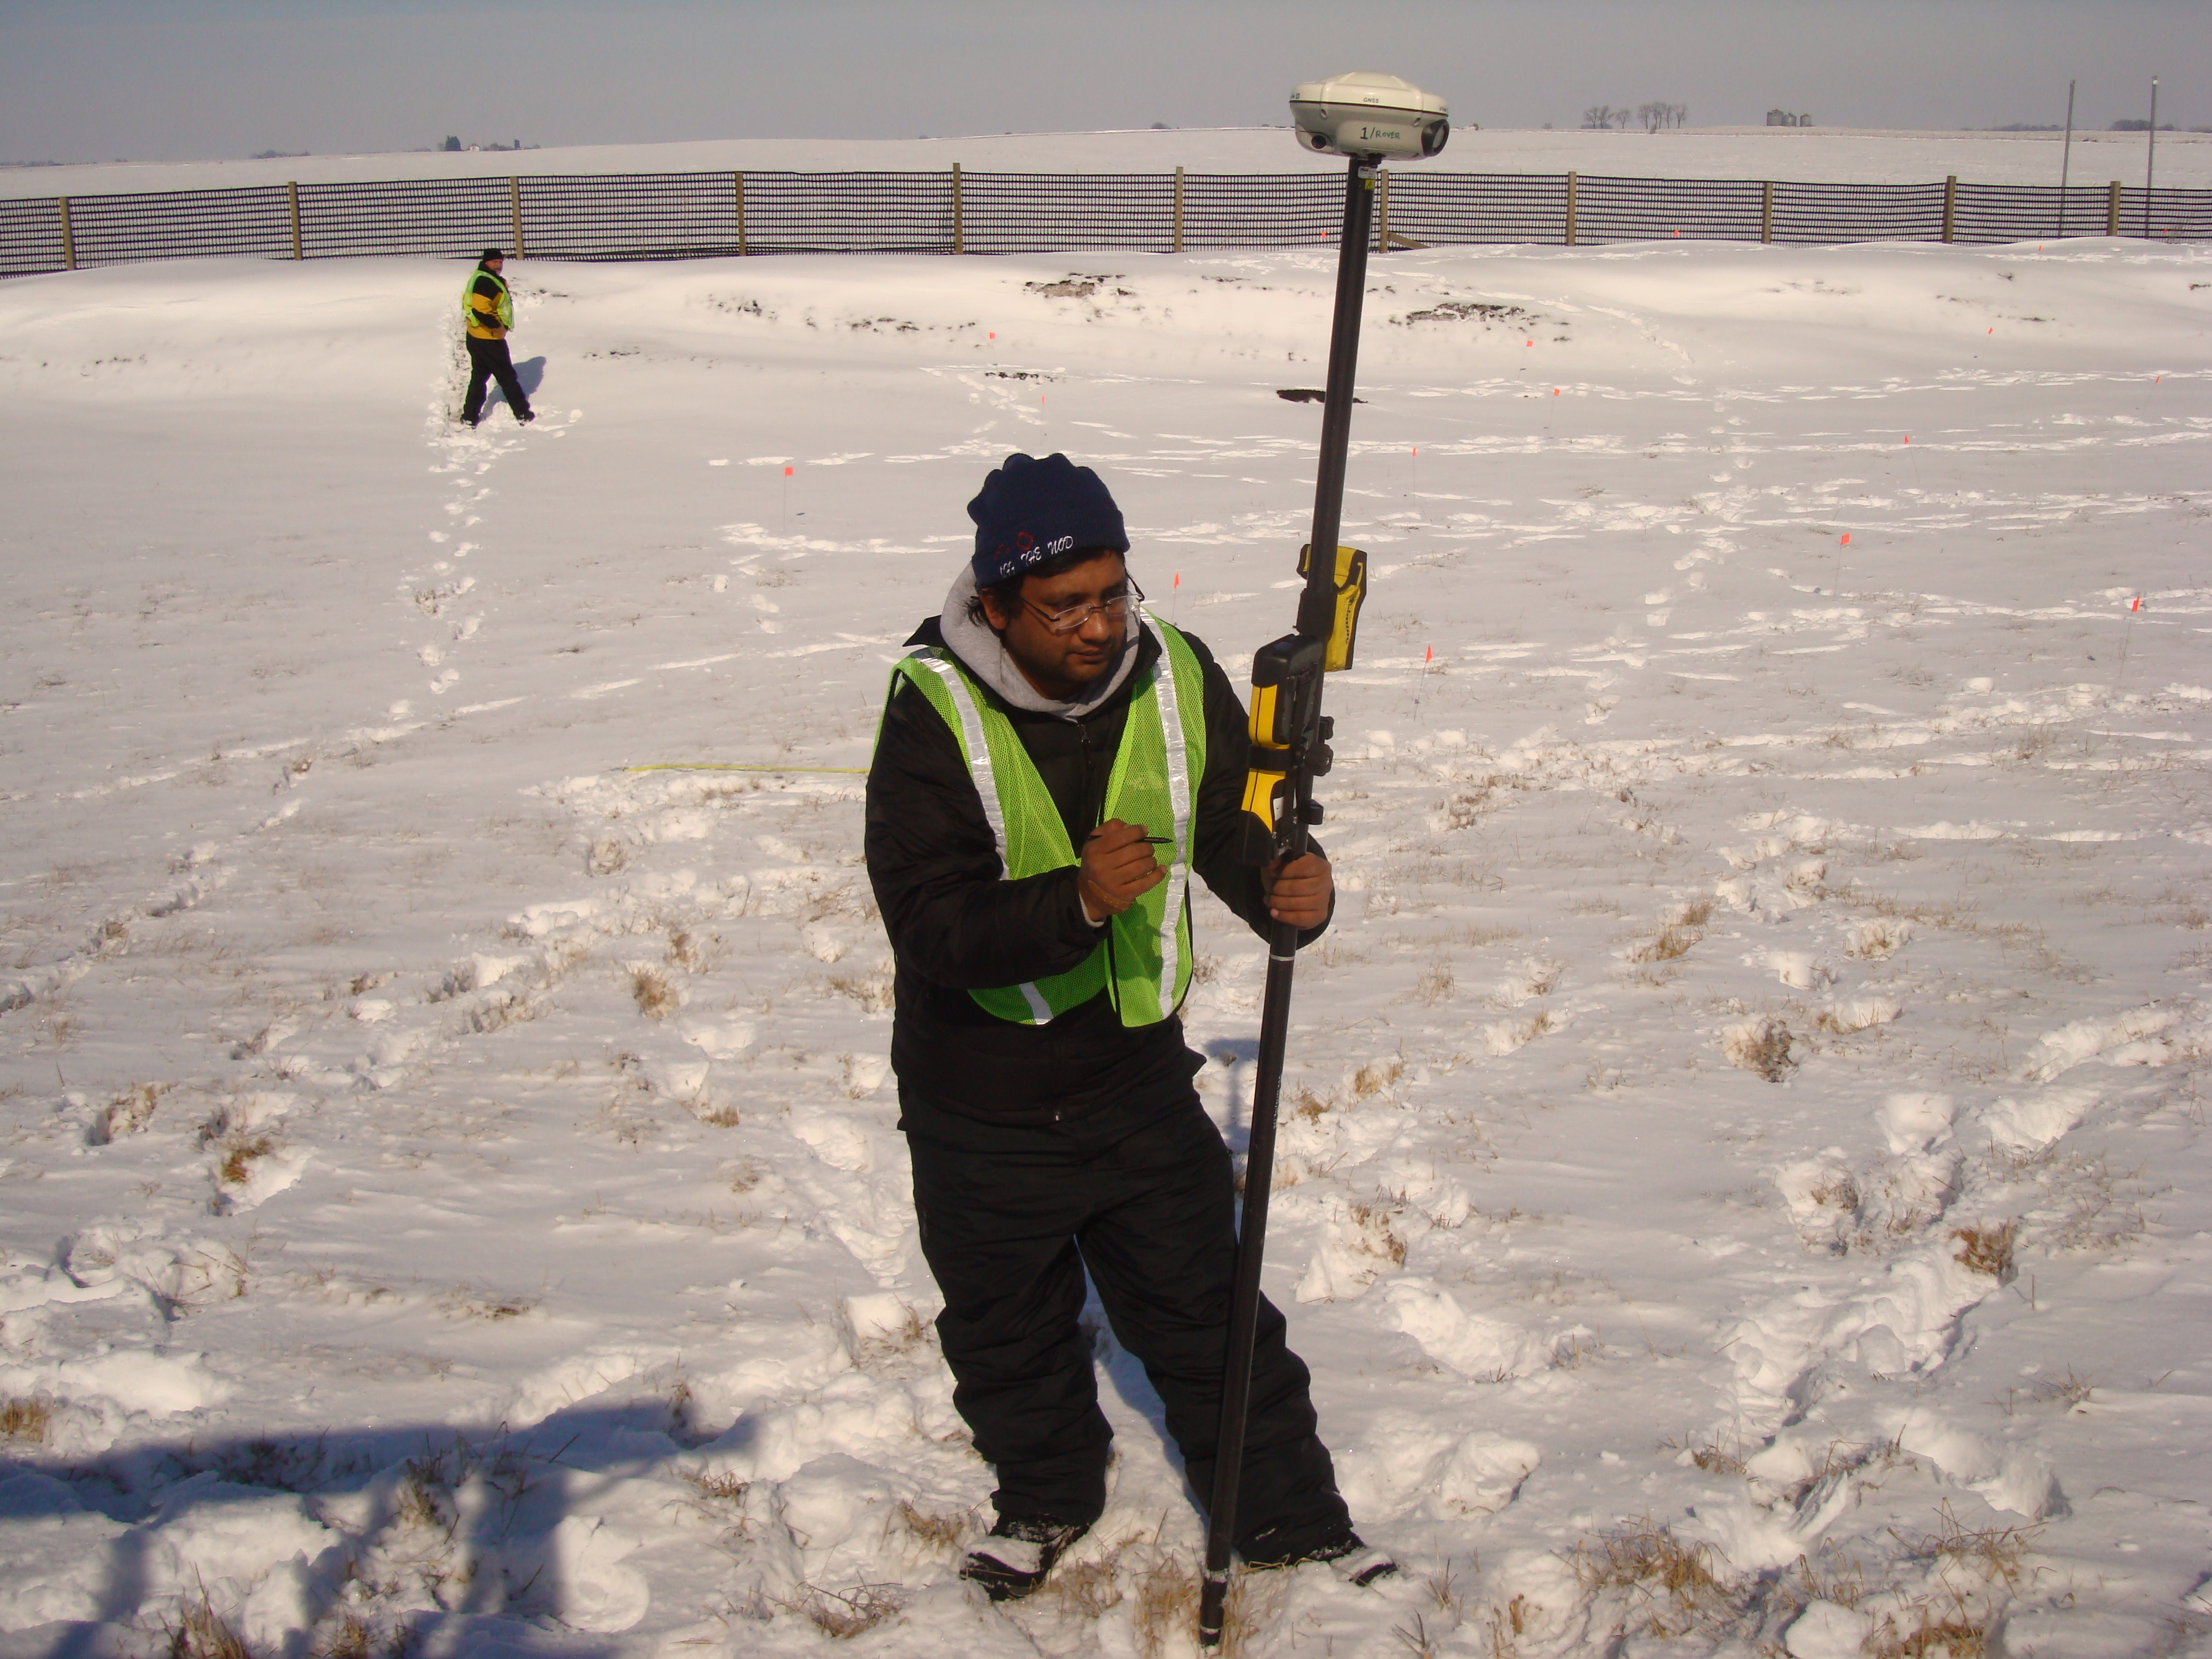 Researcher holds equipment up in a snowy field.